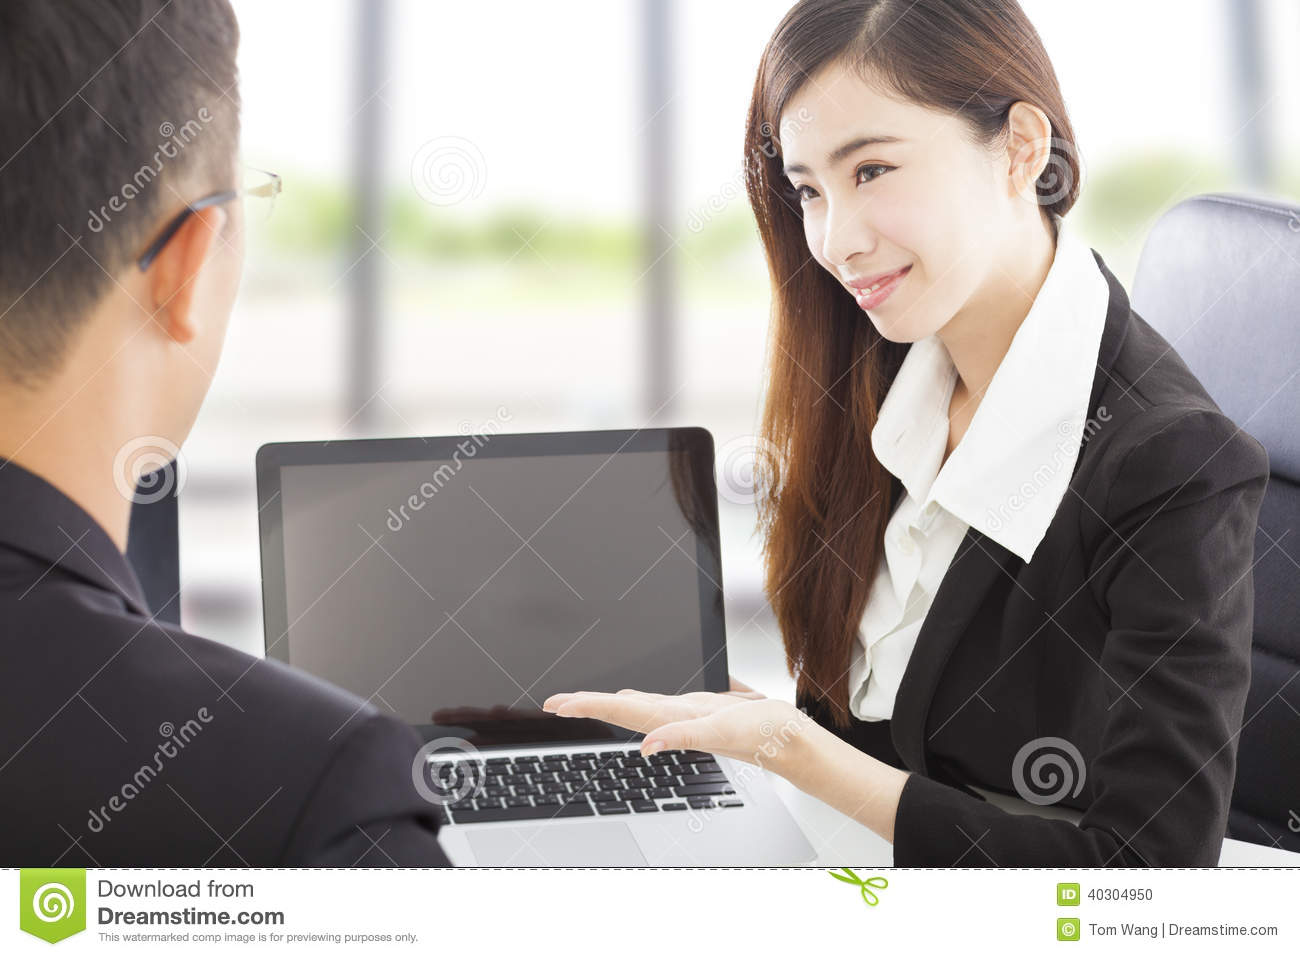 Smiling Business woman showing at laptop and explaining a plan